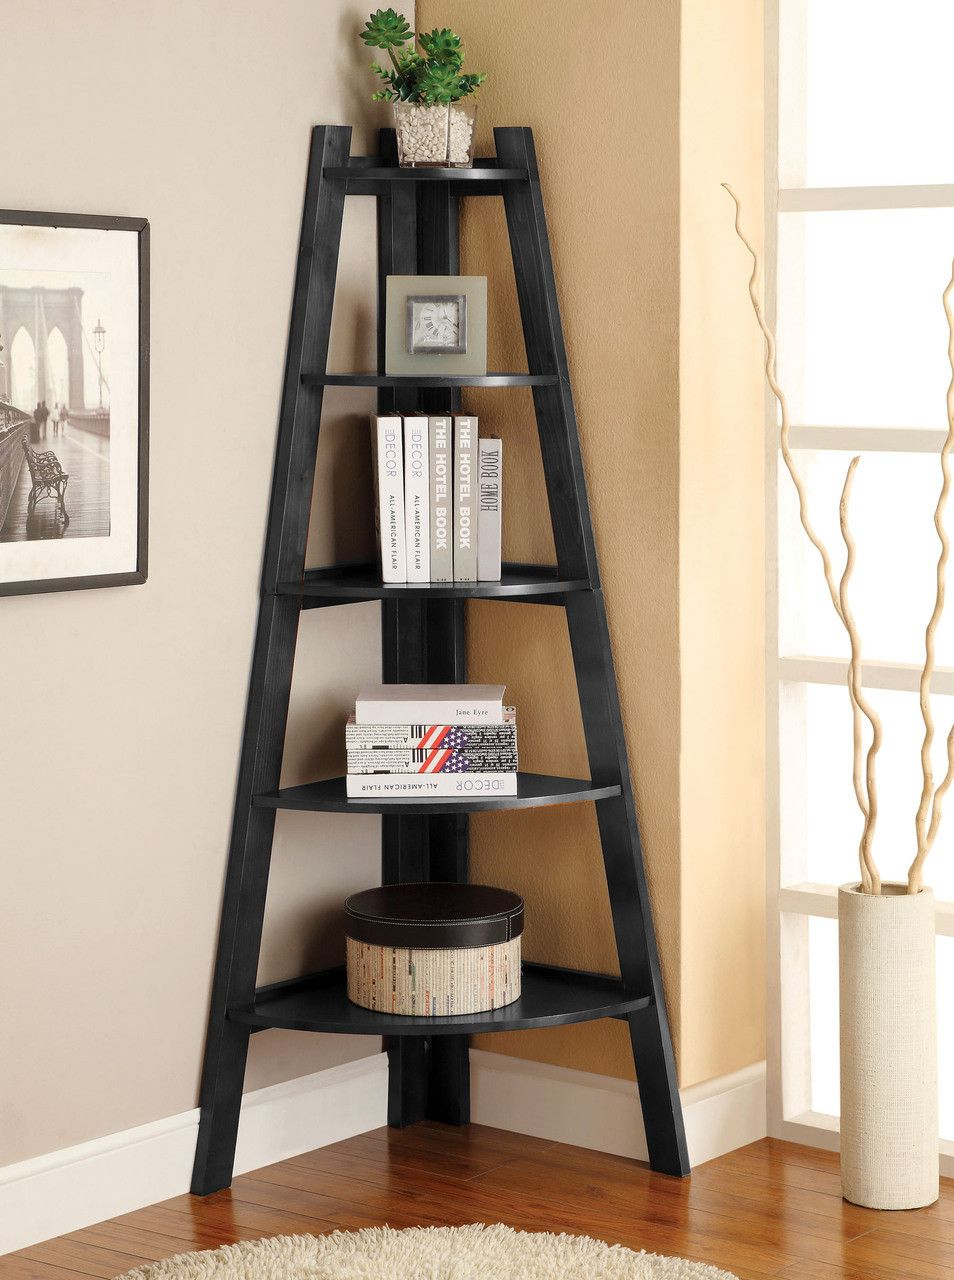 10 Best Bookshelf Ideas For Creative Decorating Projects Looking